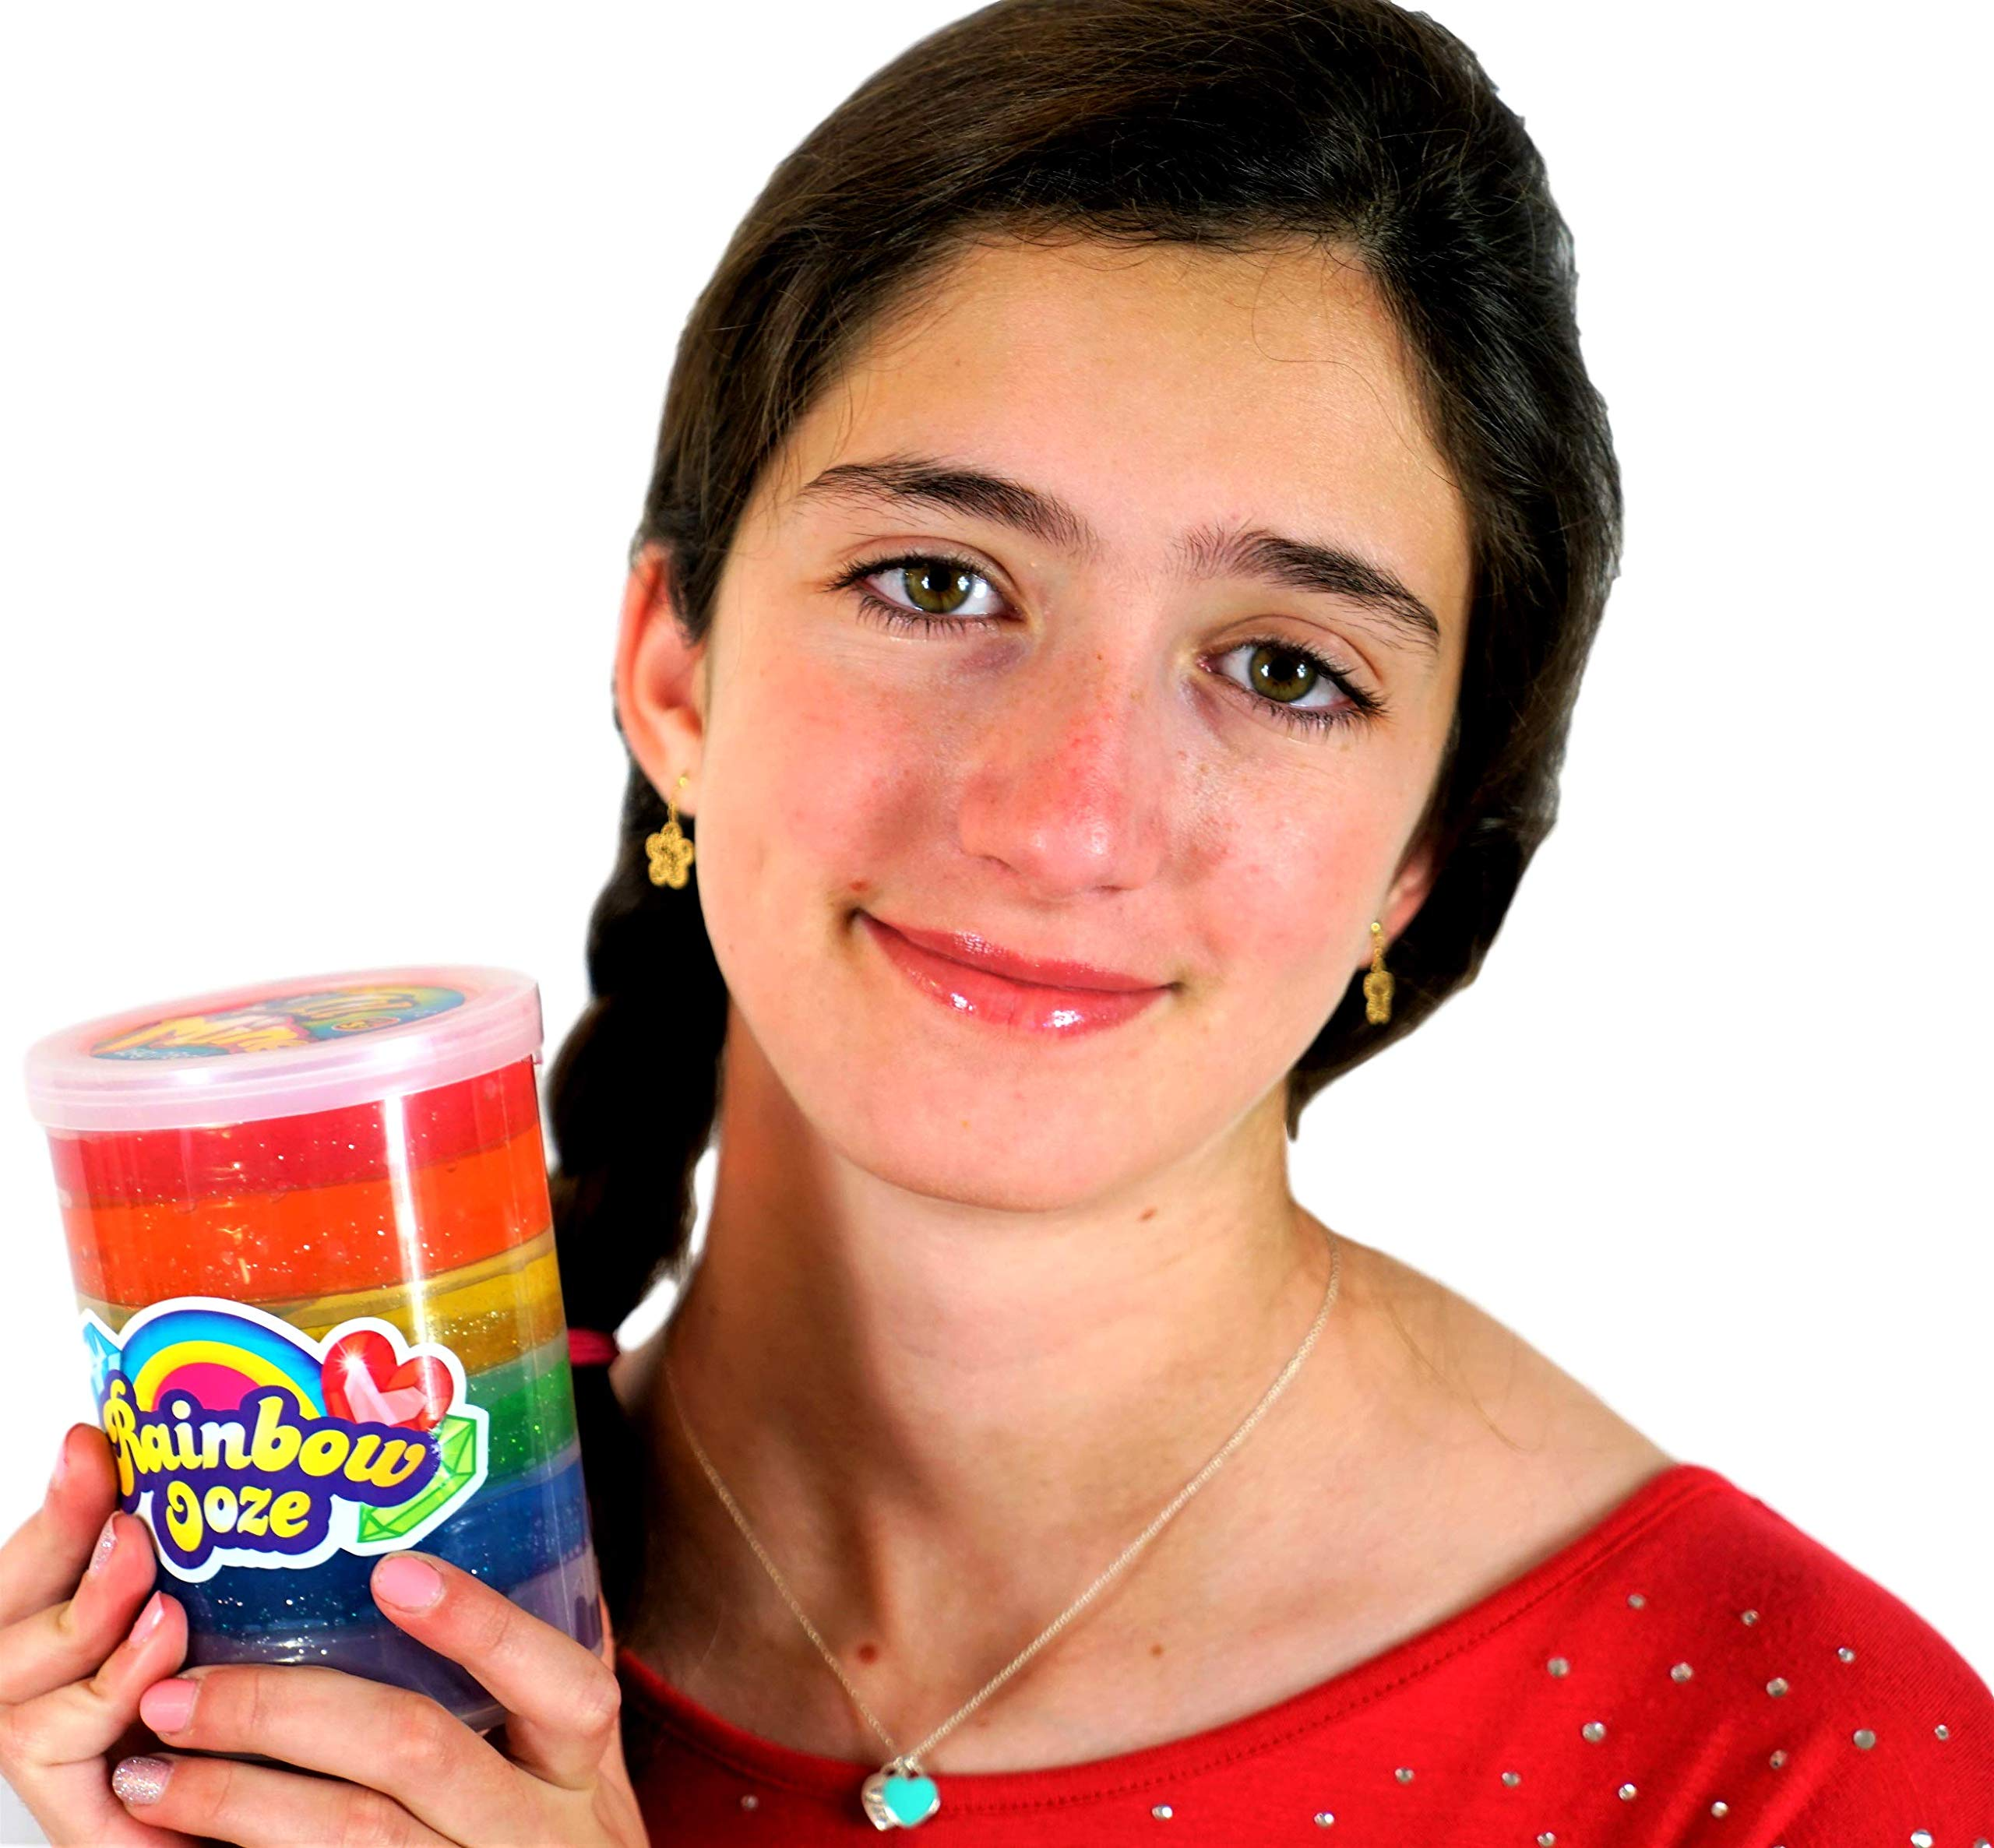 JA-RU Mega Rainbow Slime Ooze 1 Pound (Pack of 36) and one Bouncy Ball Glitter Slime Squishy Sticky and Stretchy   Item #4636-36p by JA-RU (Image #3)